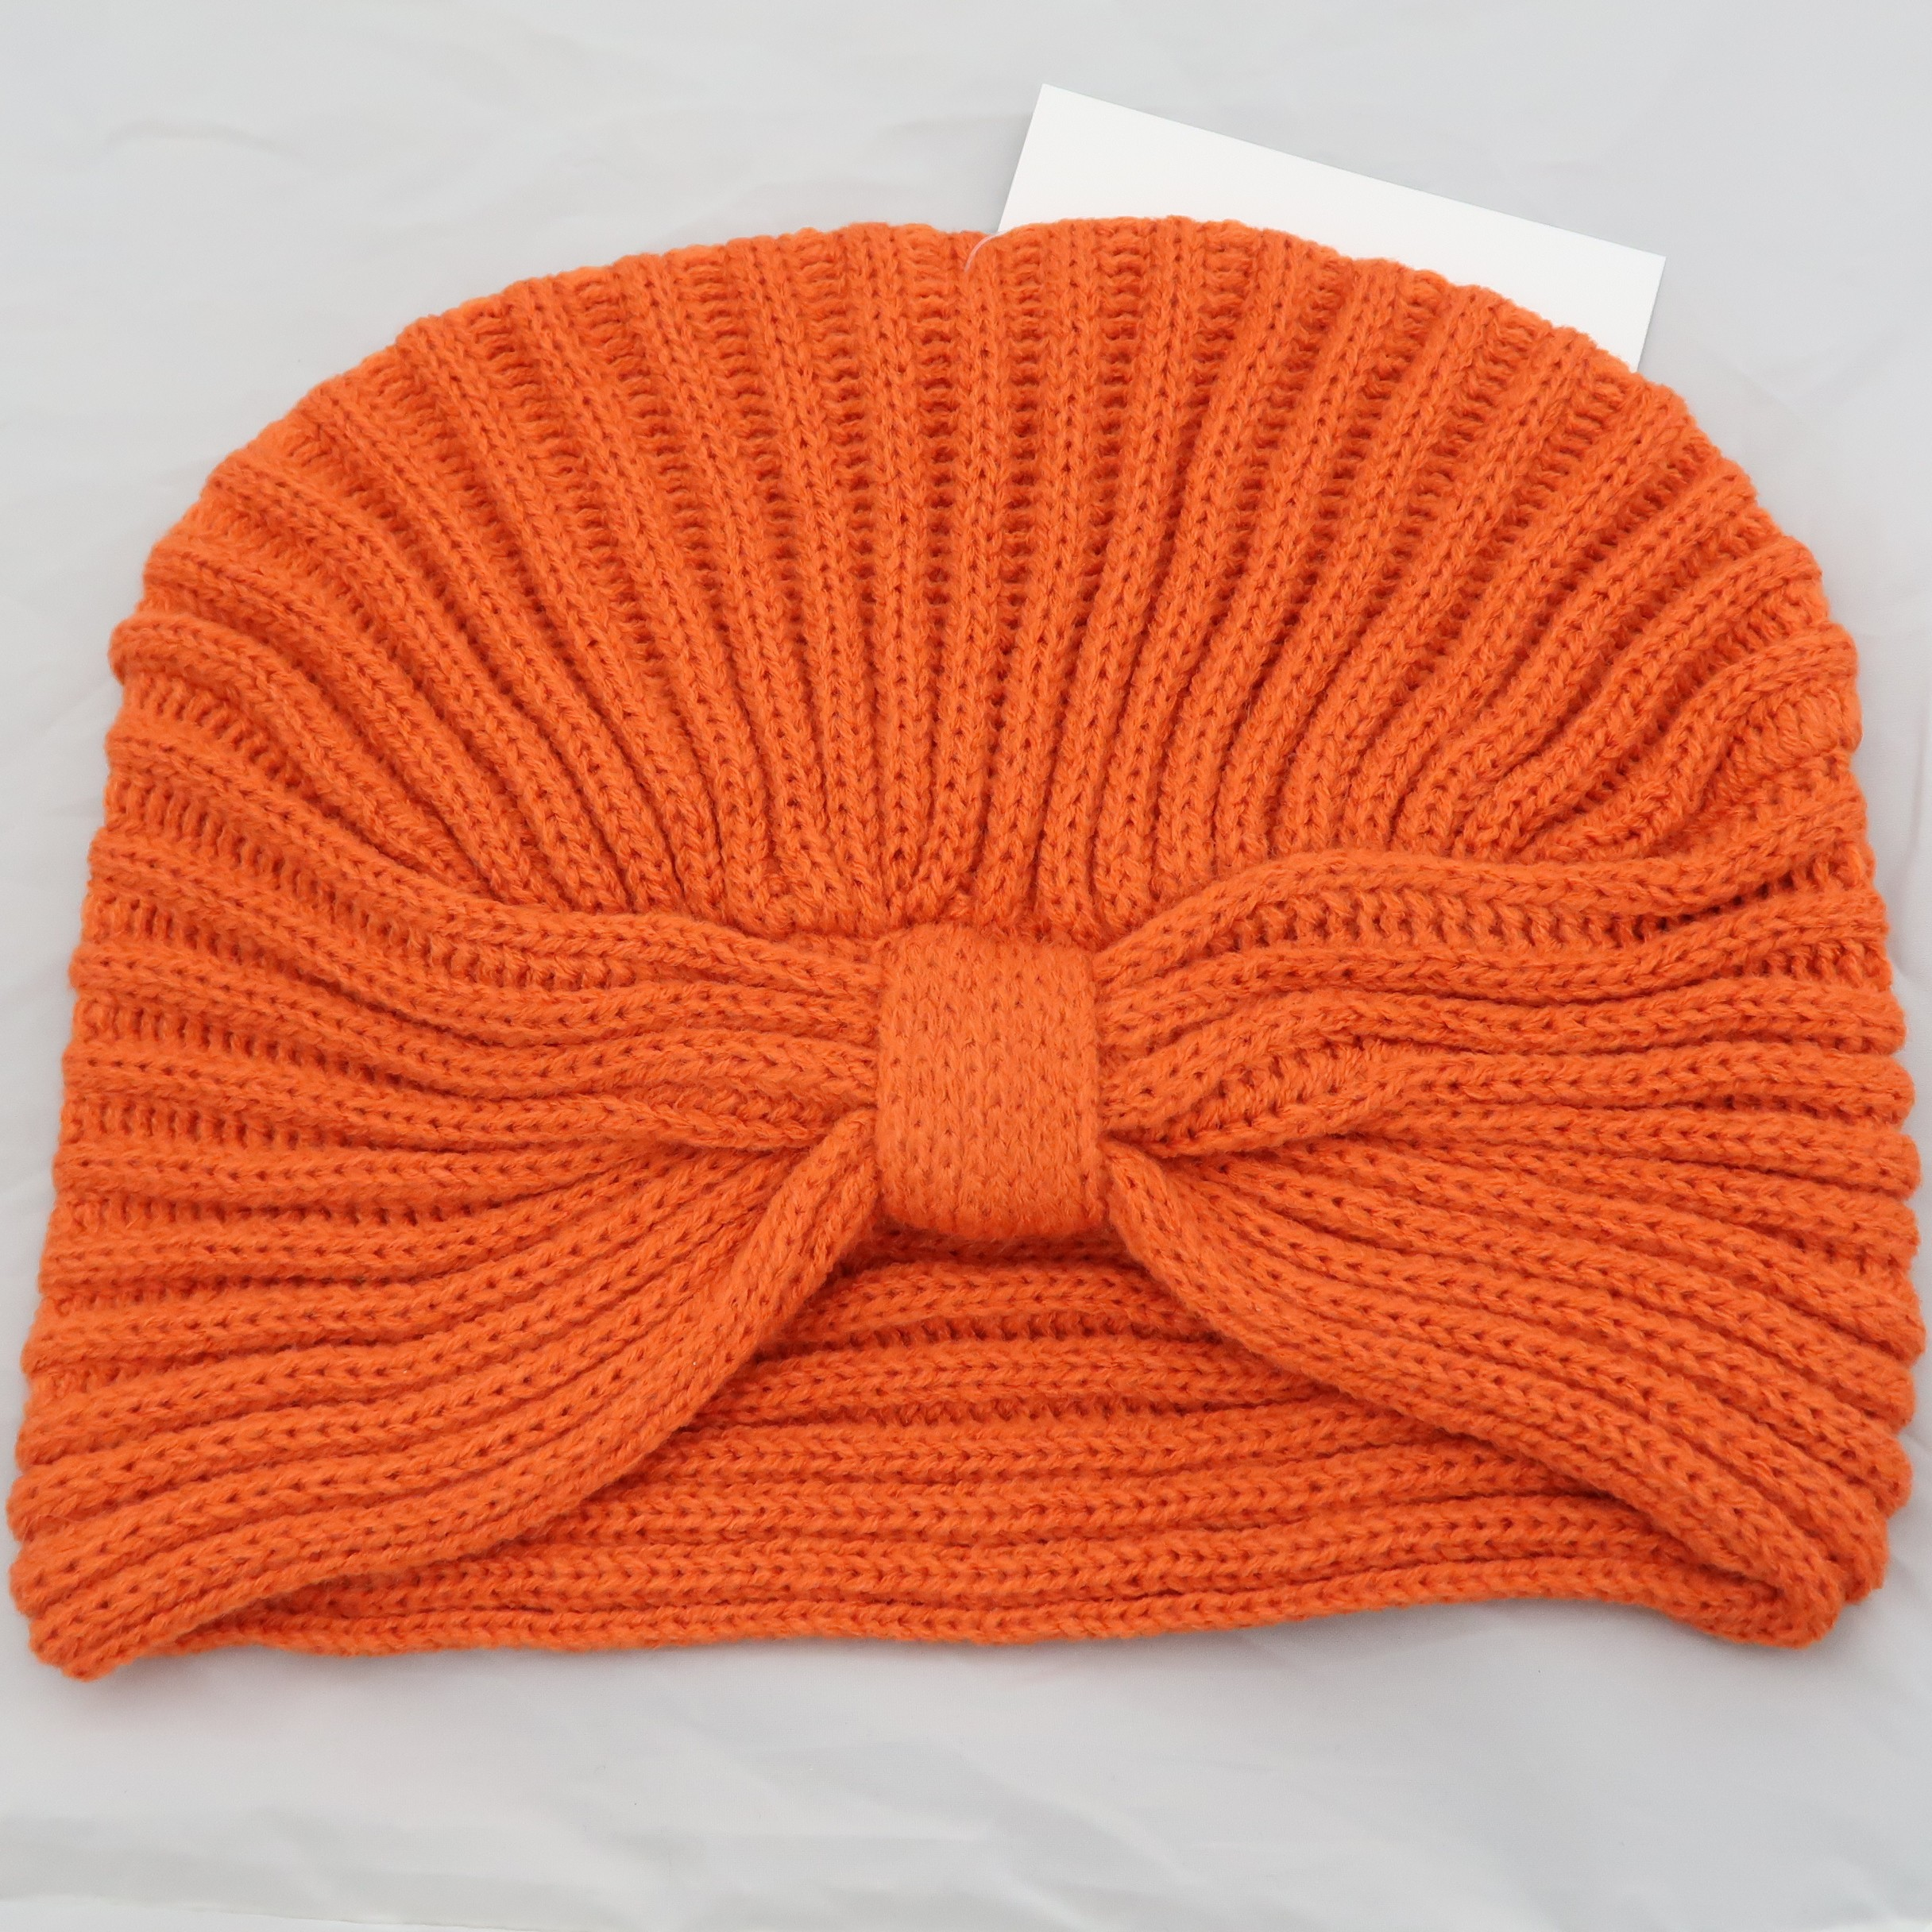 4fbfbabd438 KBB Orange Striated Design Knottled Beanie Hat (3 Hats Lot ...